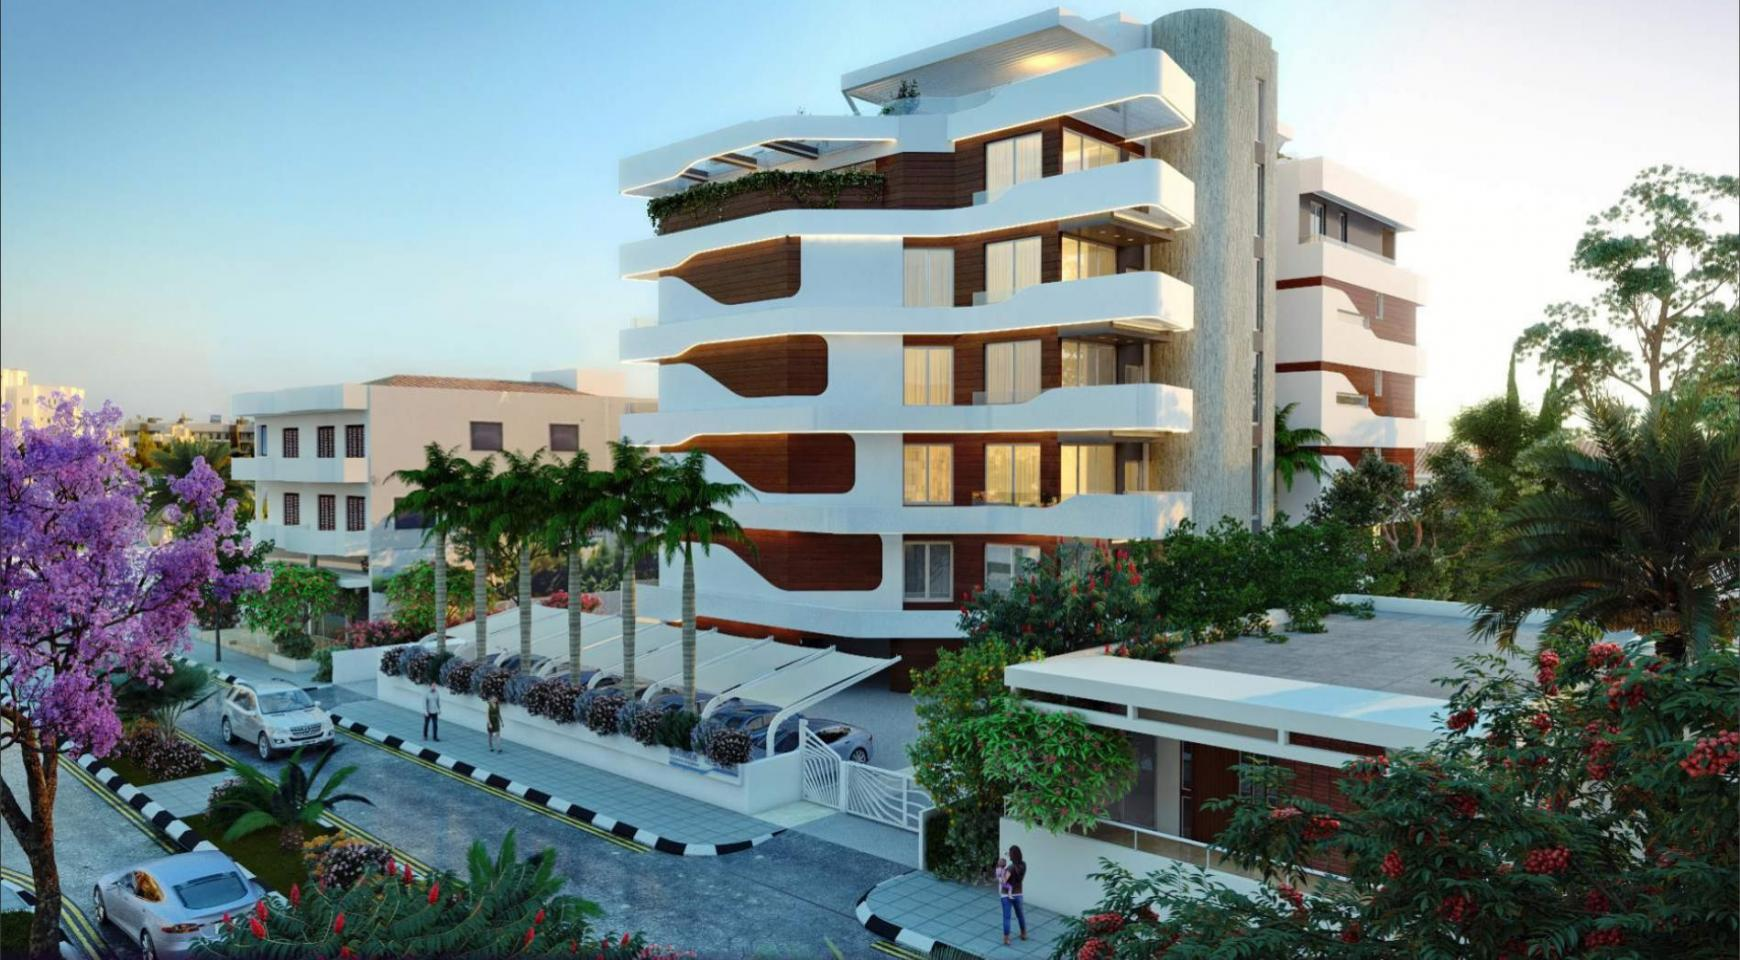 New 3 Bedroom Apartment in a Contemporary Complex near the Sea - 4